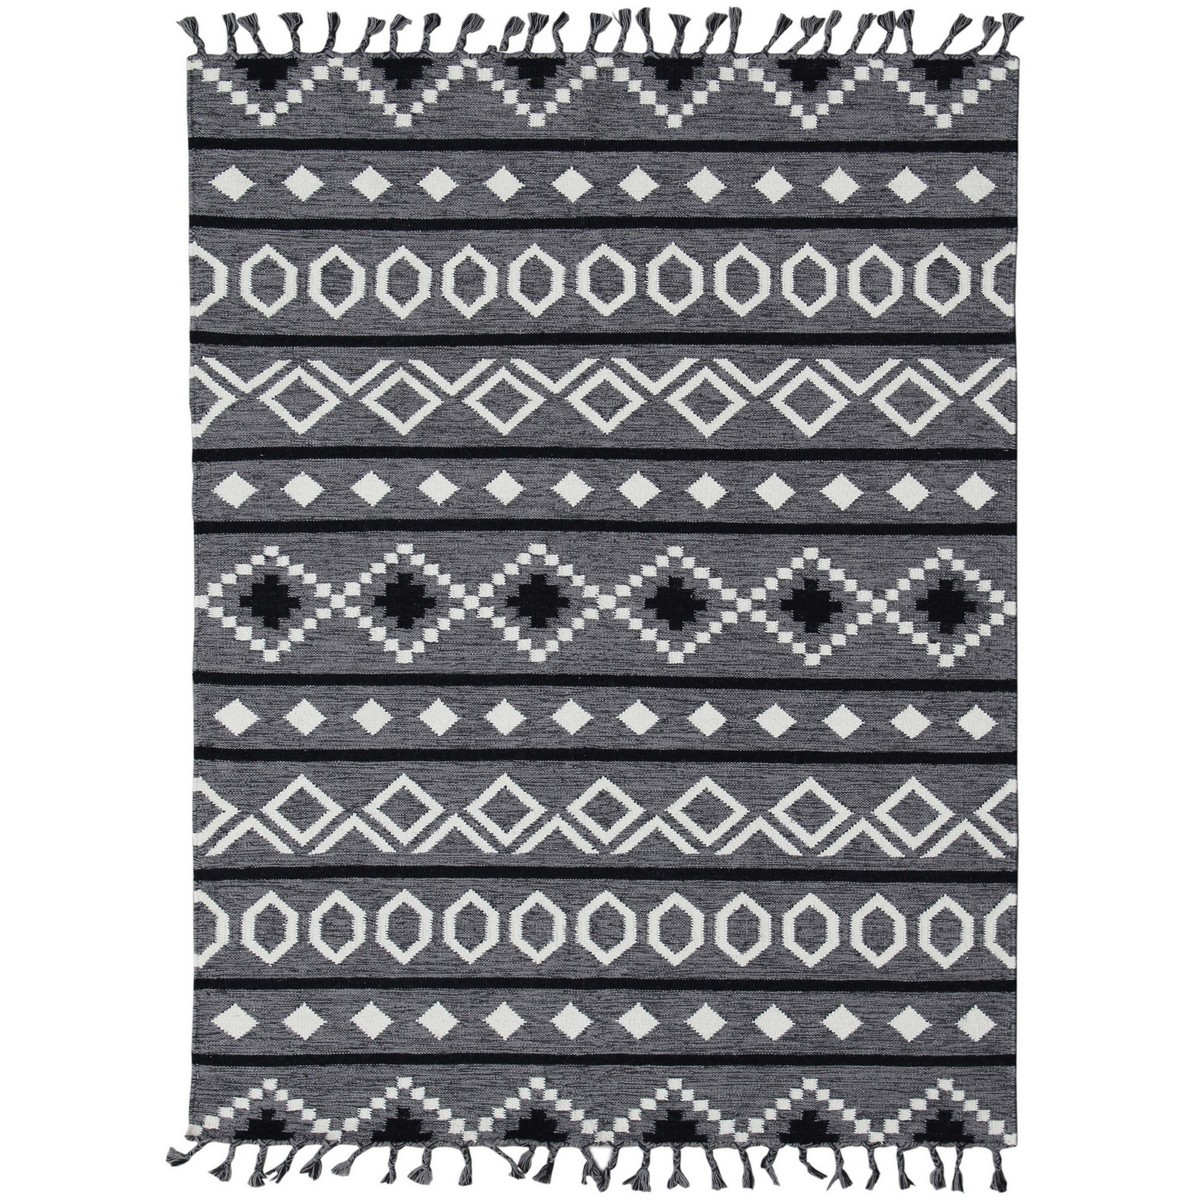 Artifact Handwoven Wool Rug , 190x280cm, Grey